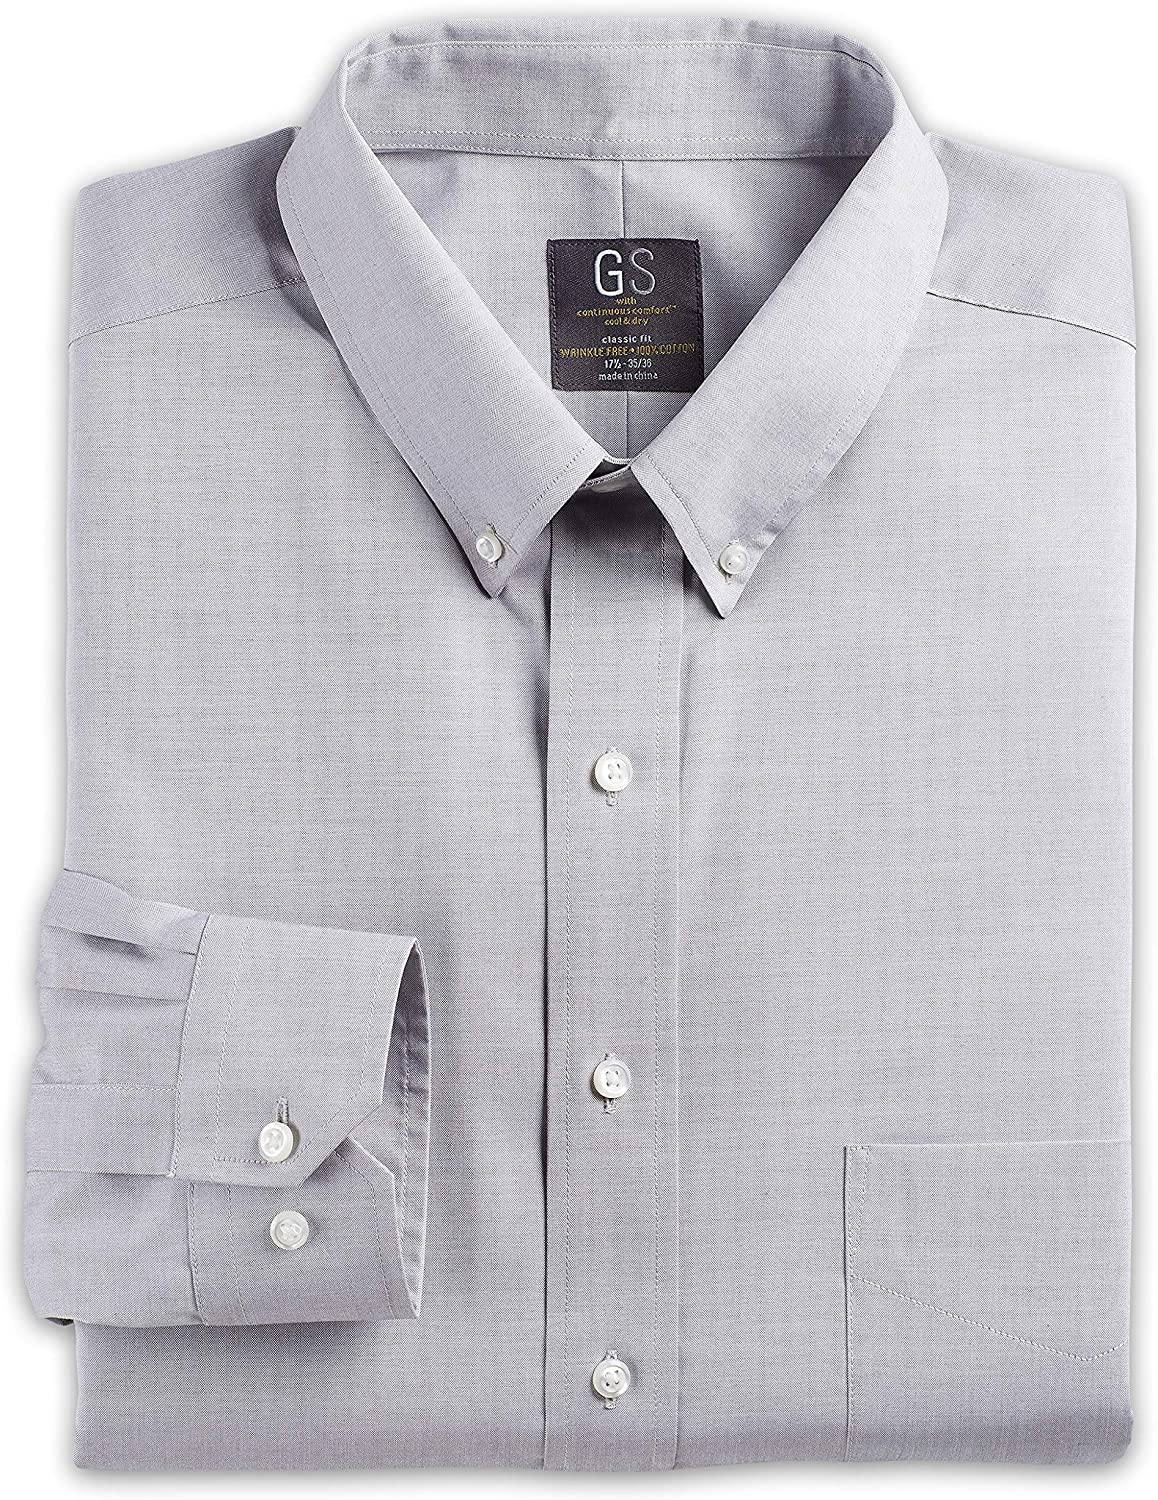 Gold Series Big and Tall Wrinkle-Free Cool & Dry Solid Pinpoint Dress Shirt